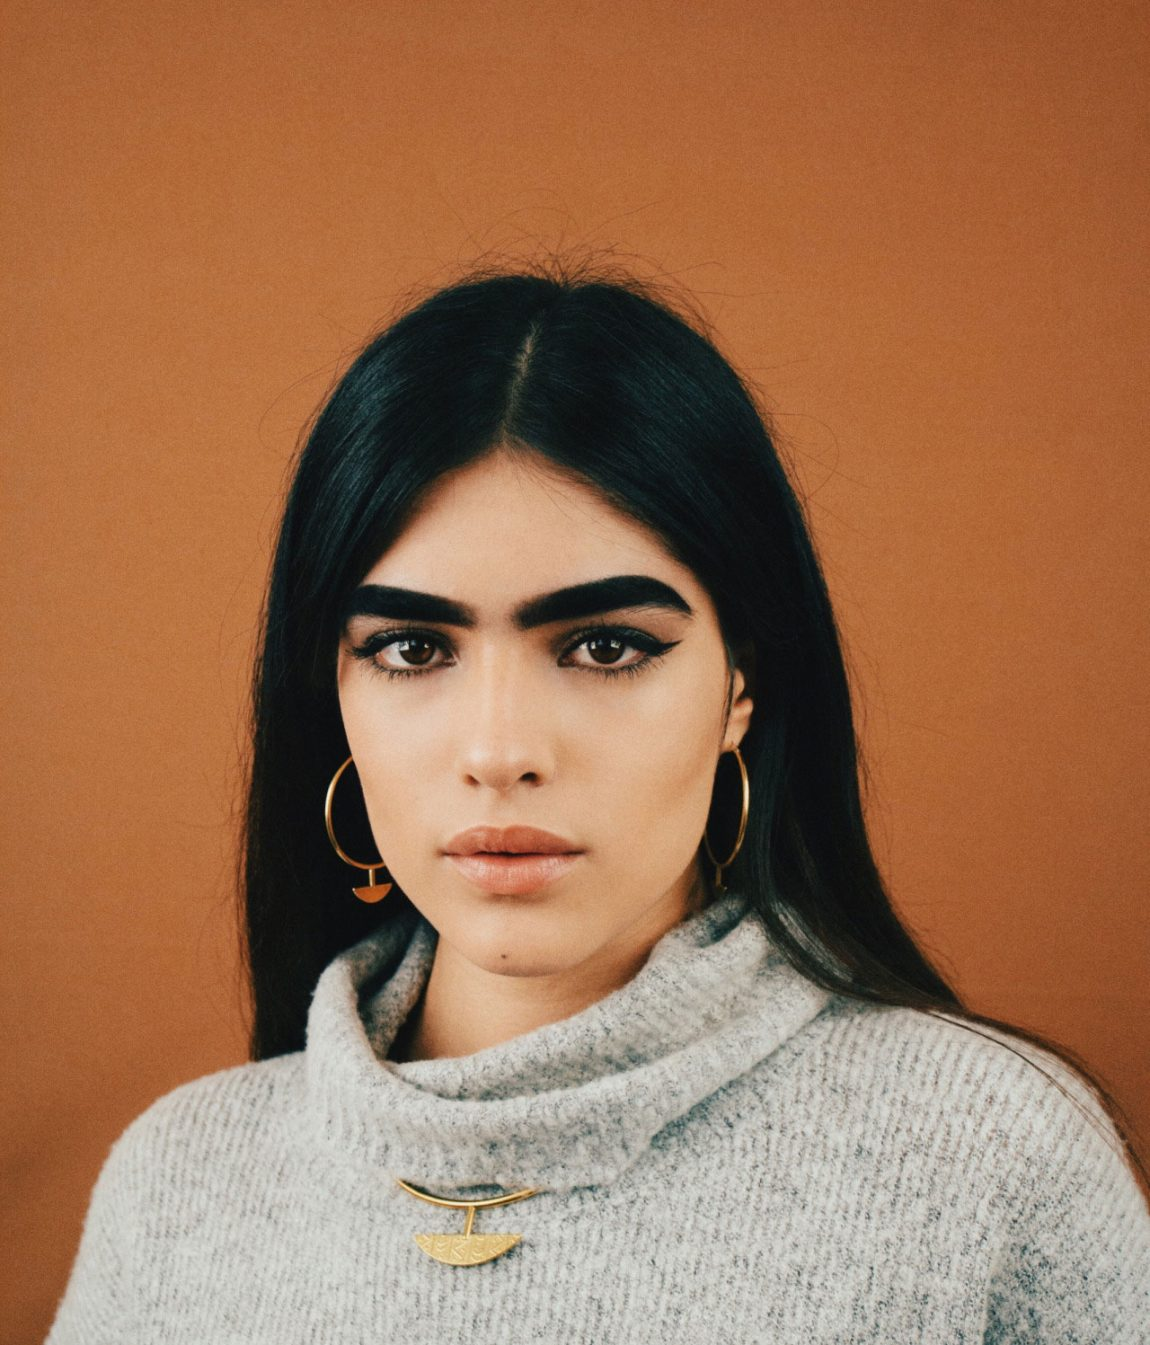 17 Year Old Puerto Ricans Eyebrows Launched Her Modeling Career